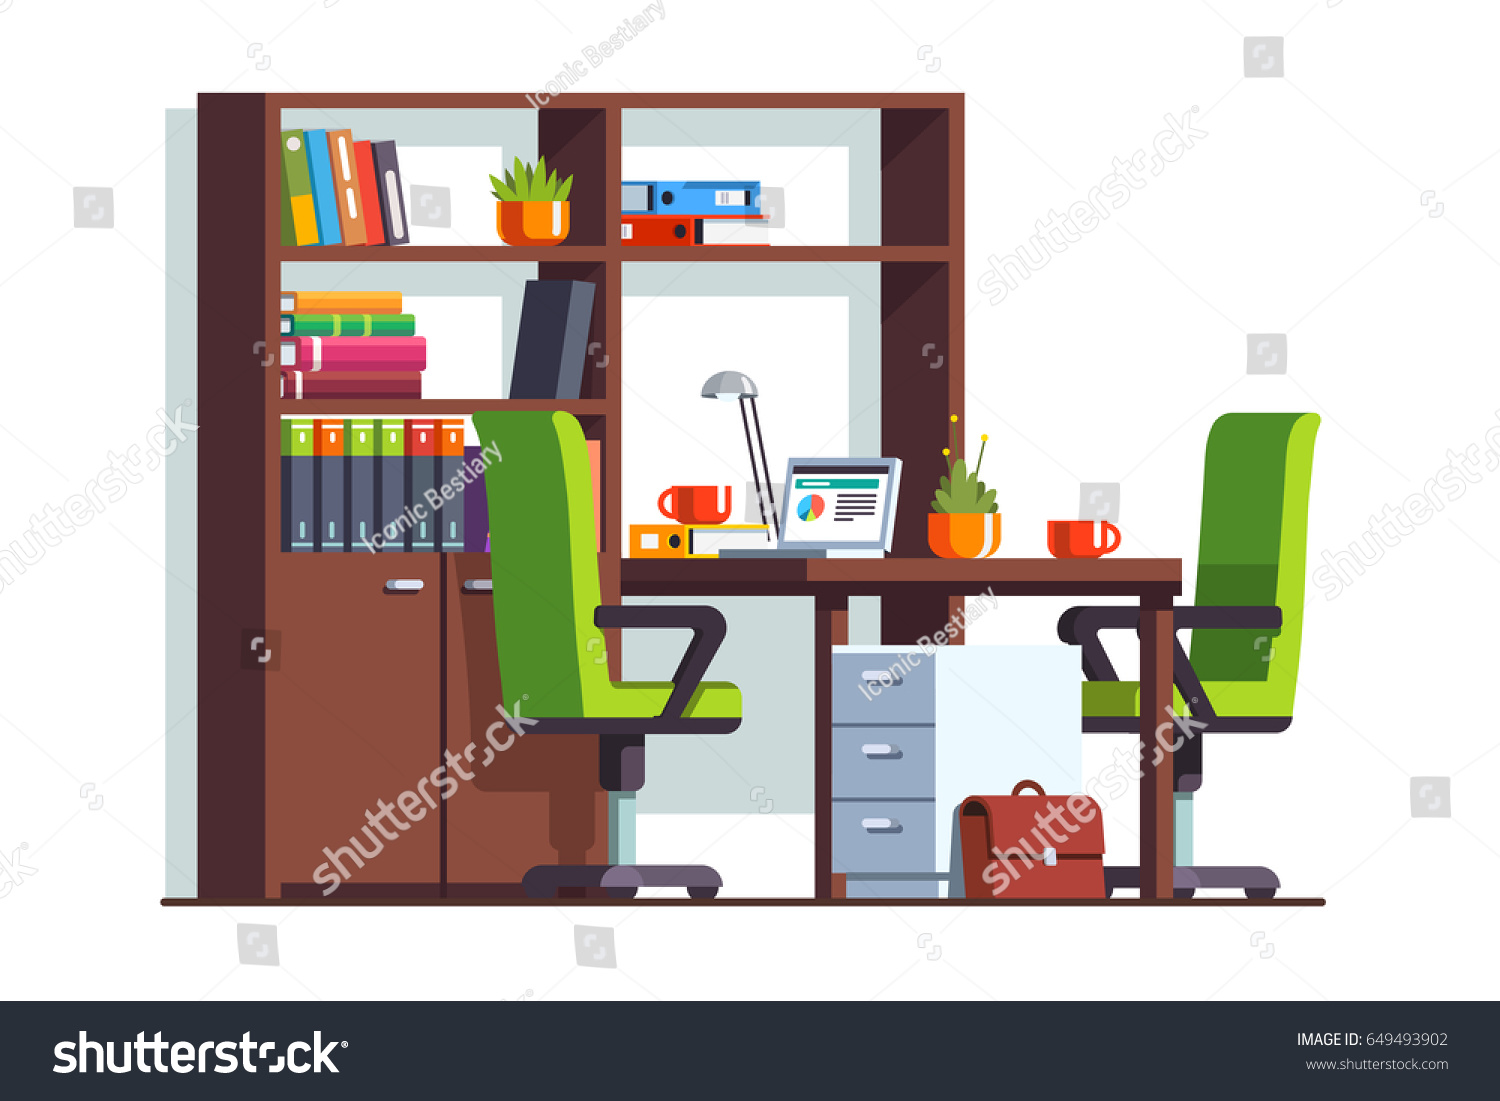 Accountant Or Lawyer Office Room Interior Design With Desk Laptop Computer Two Chairs And